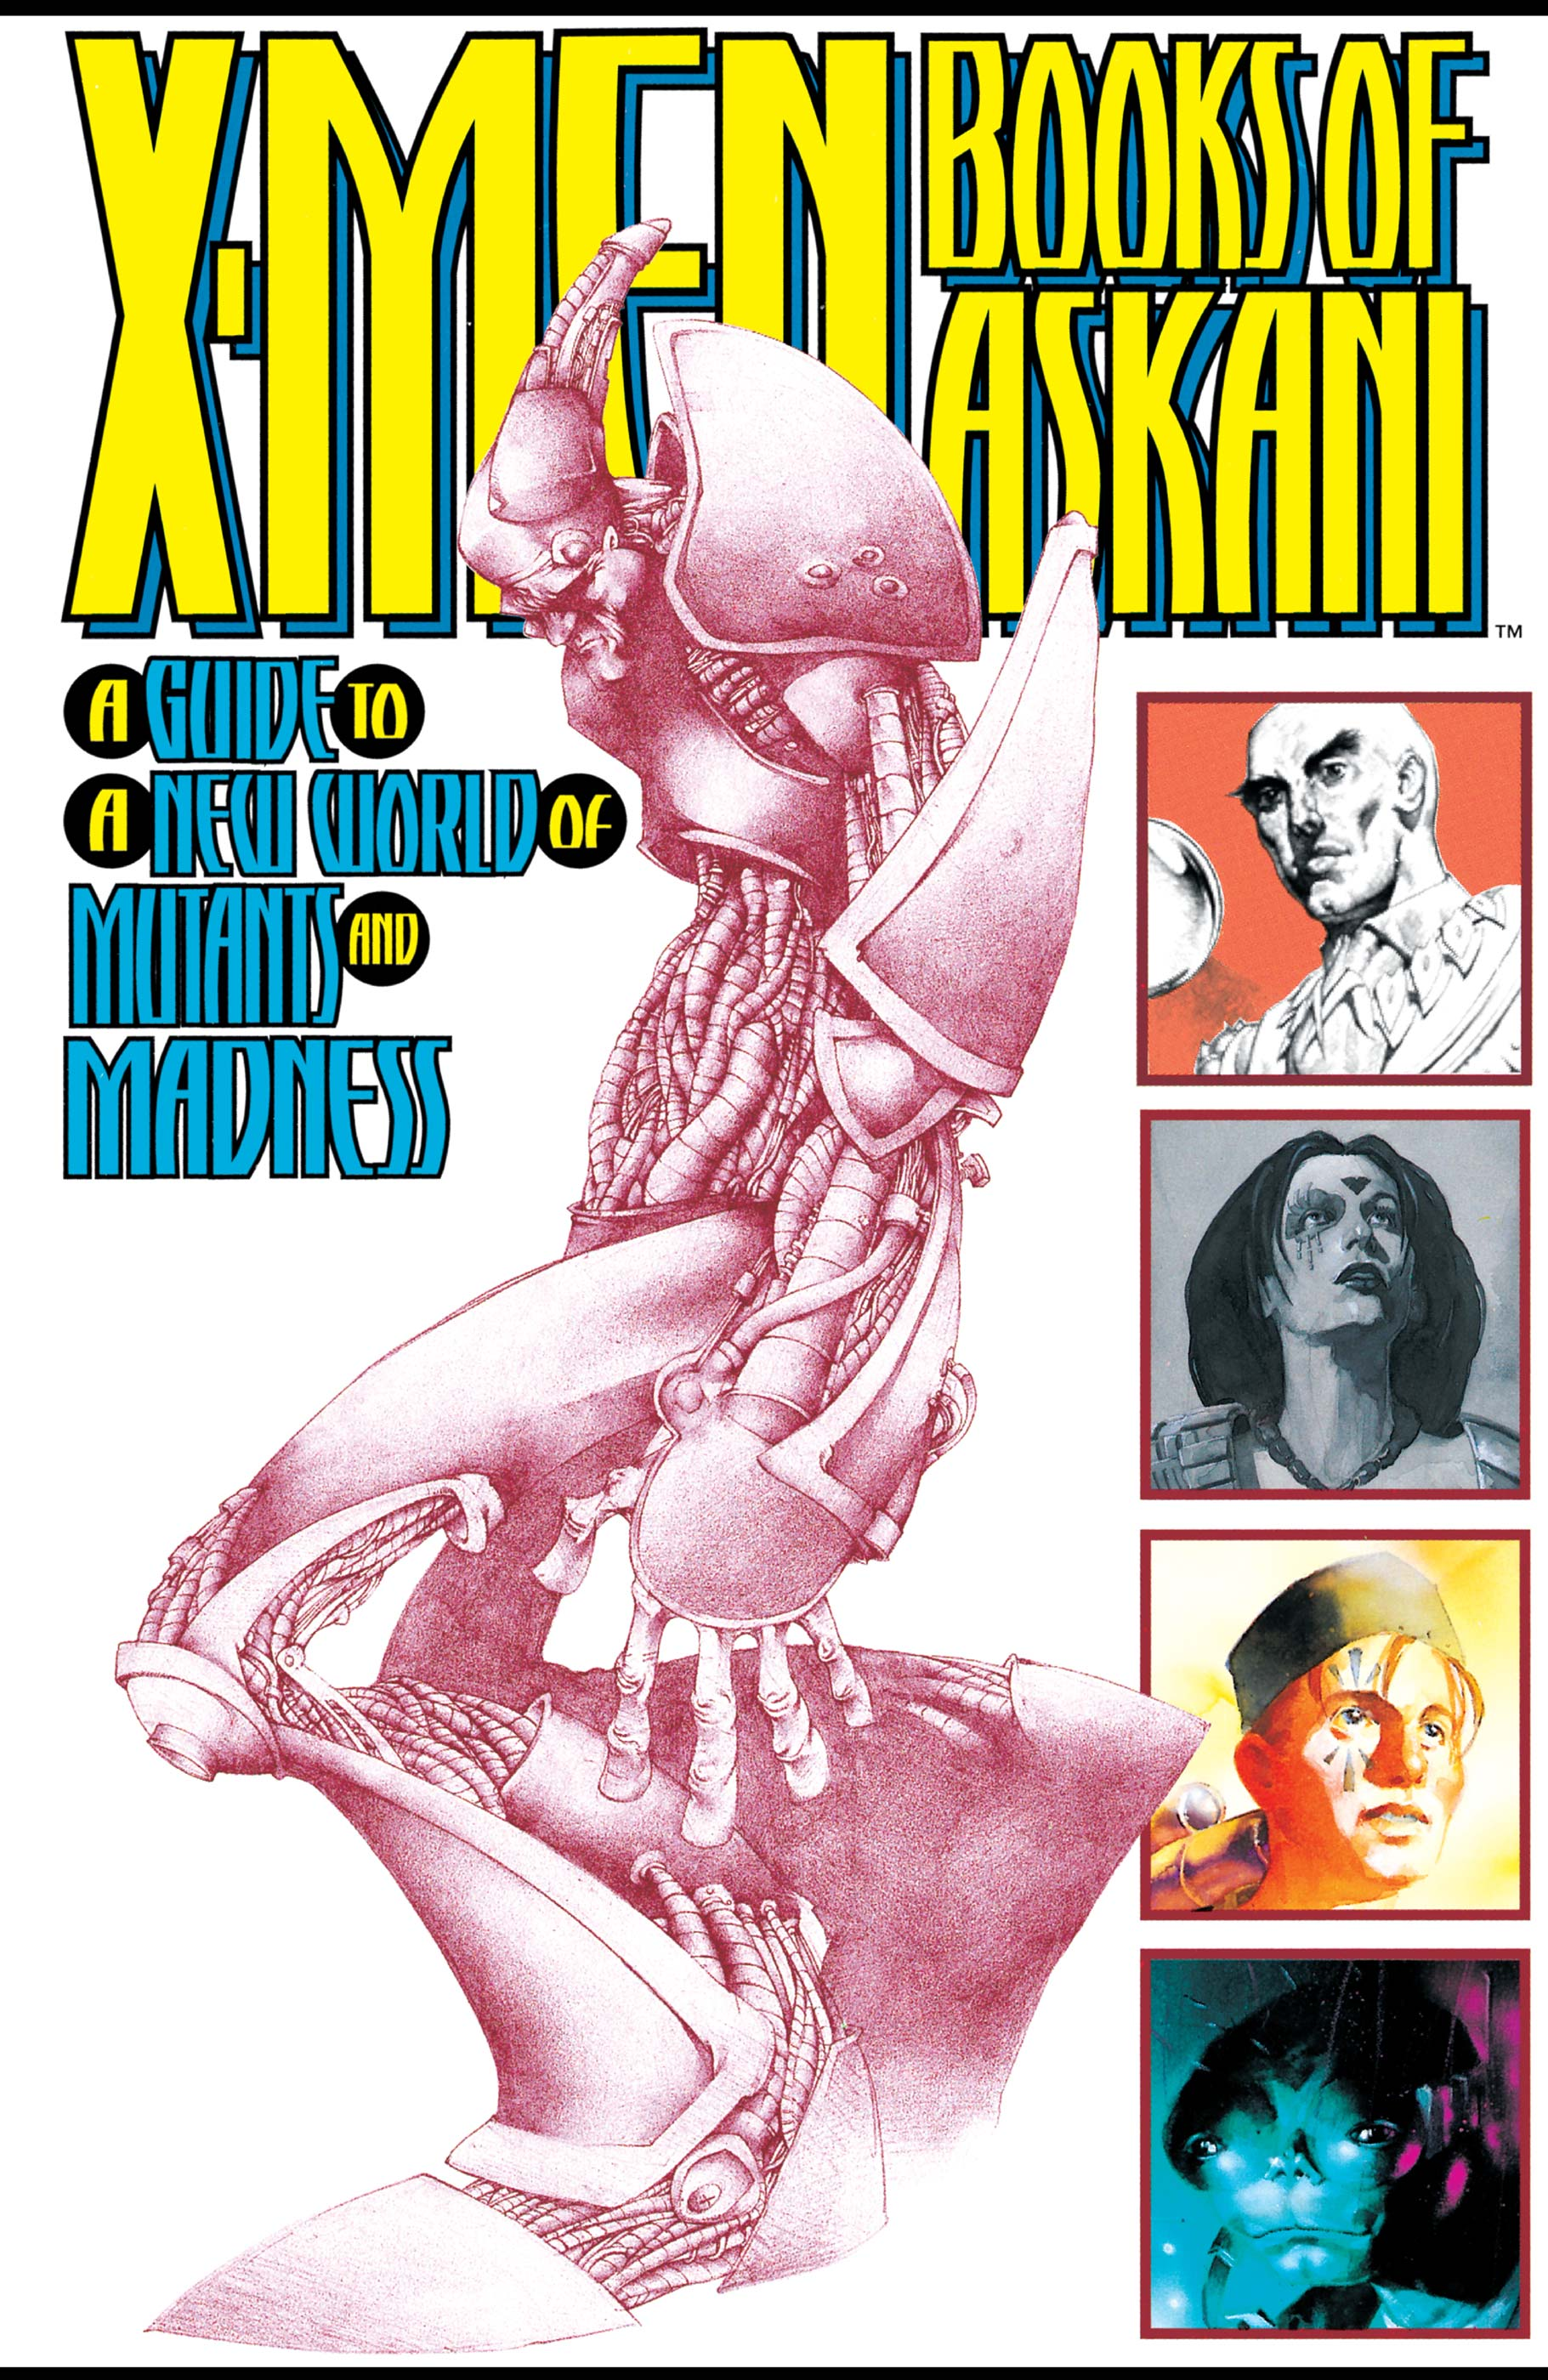 X-Men: Books of Askani (1995) #1